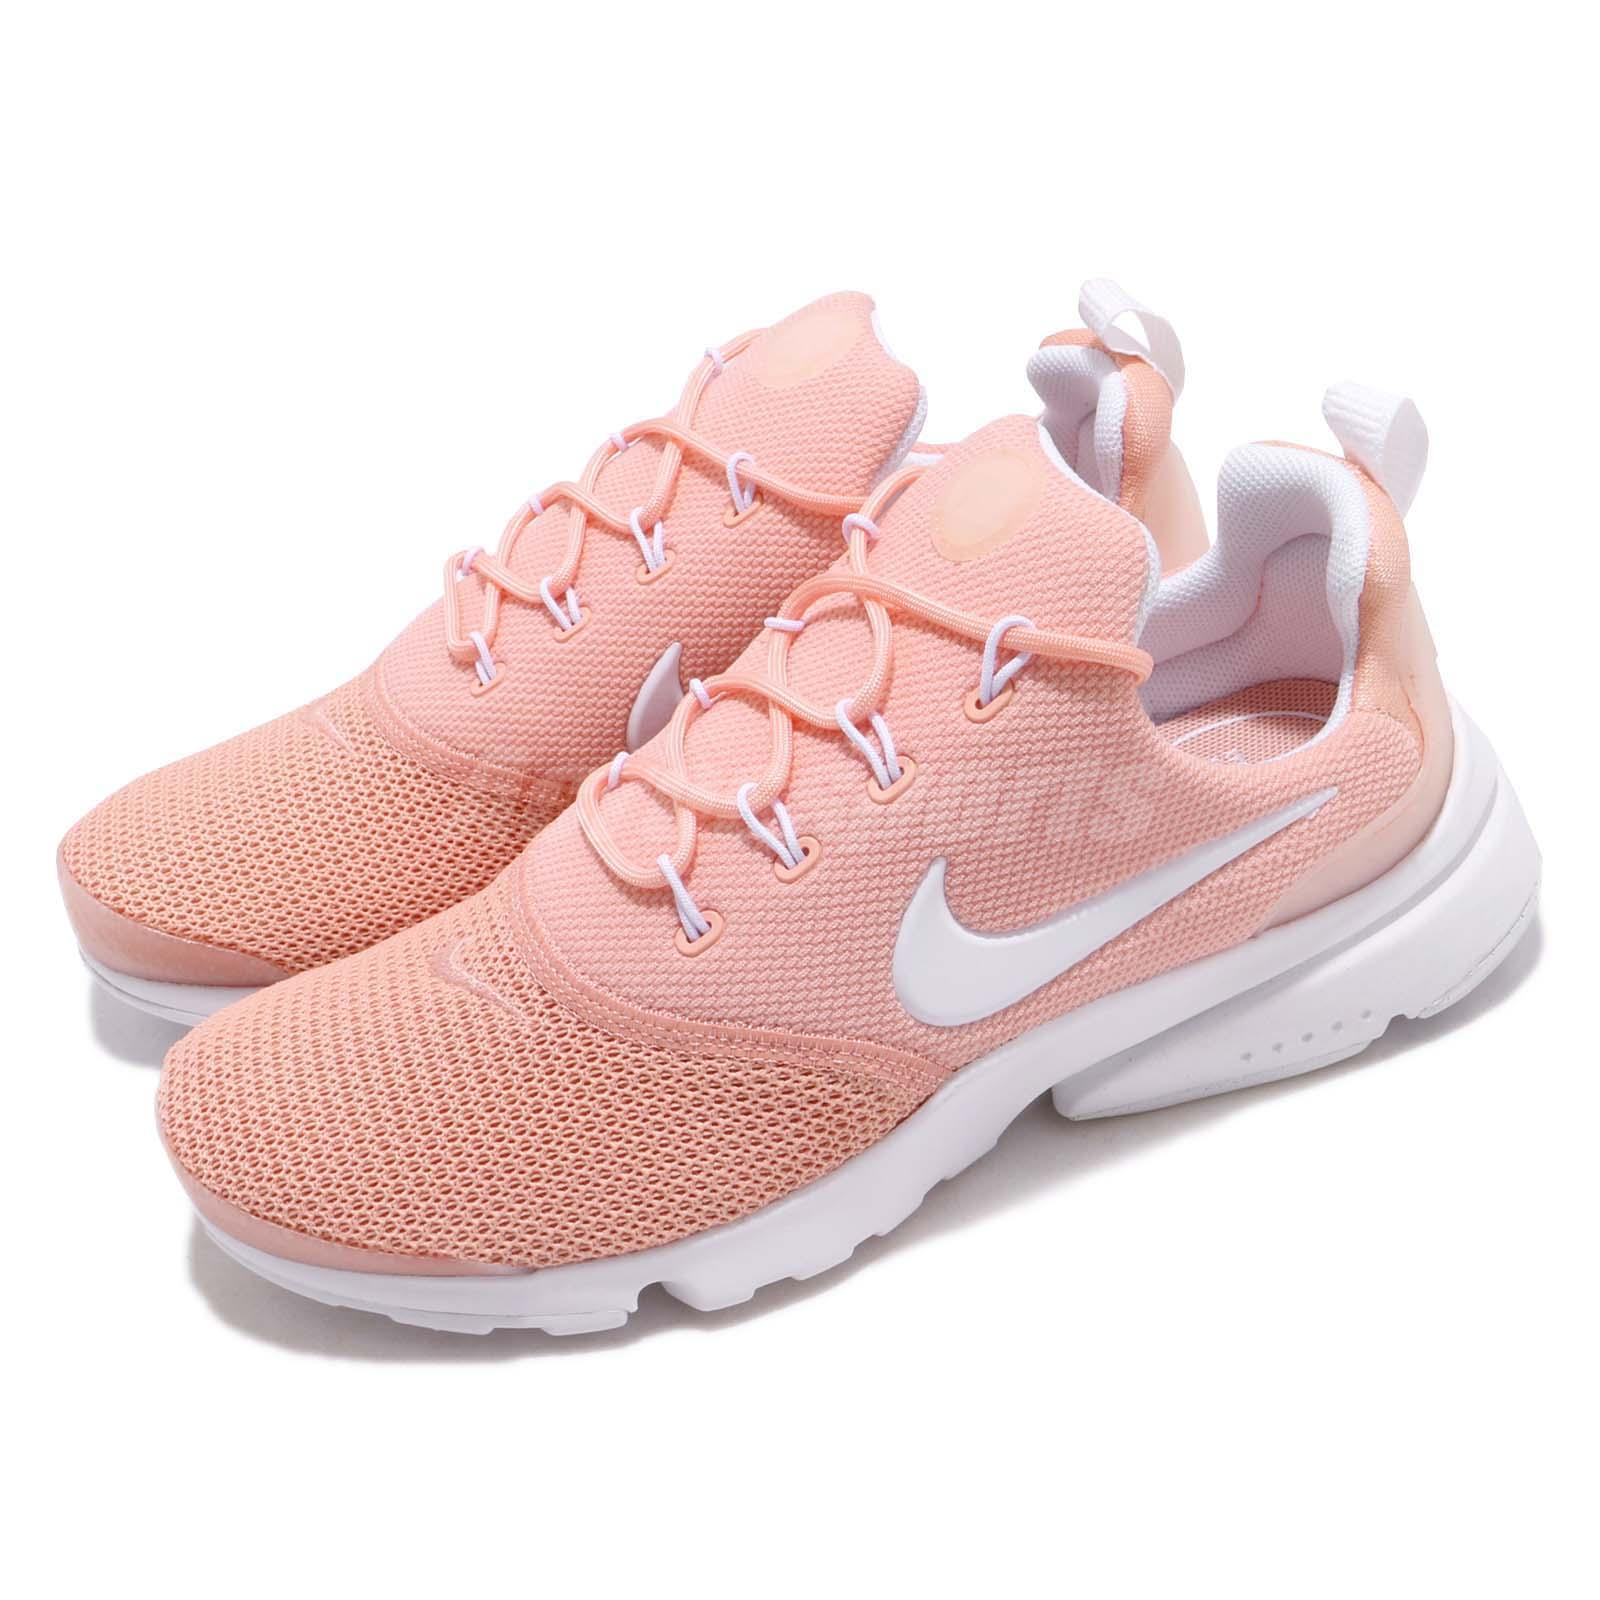 official photos c9b2b b2207 Details about Nike Wmns Presto Fly Coral Stardust White Women Running Shoes  Sneaker 910569-605